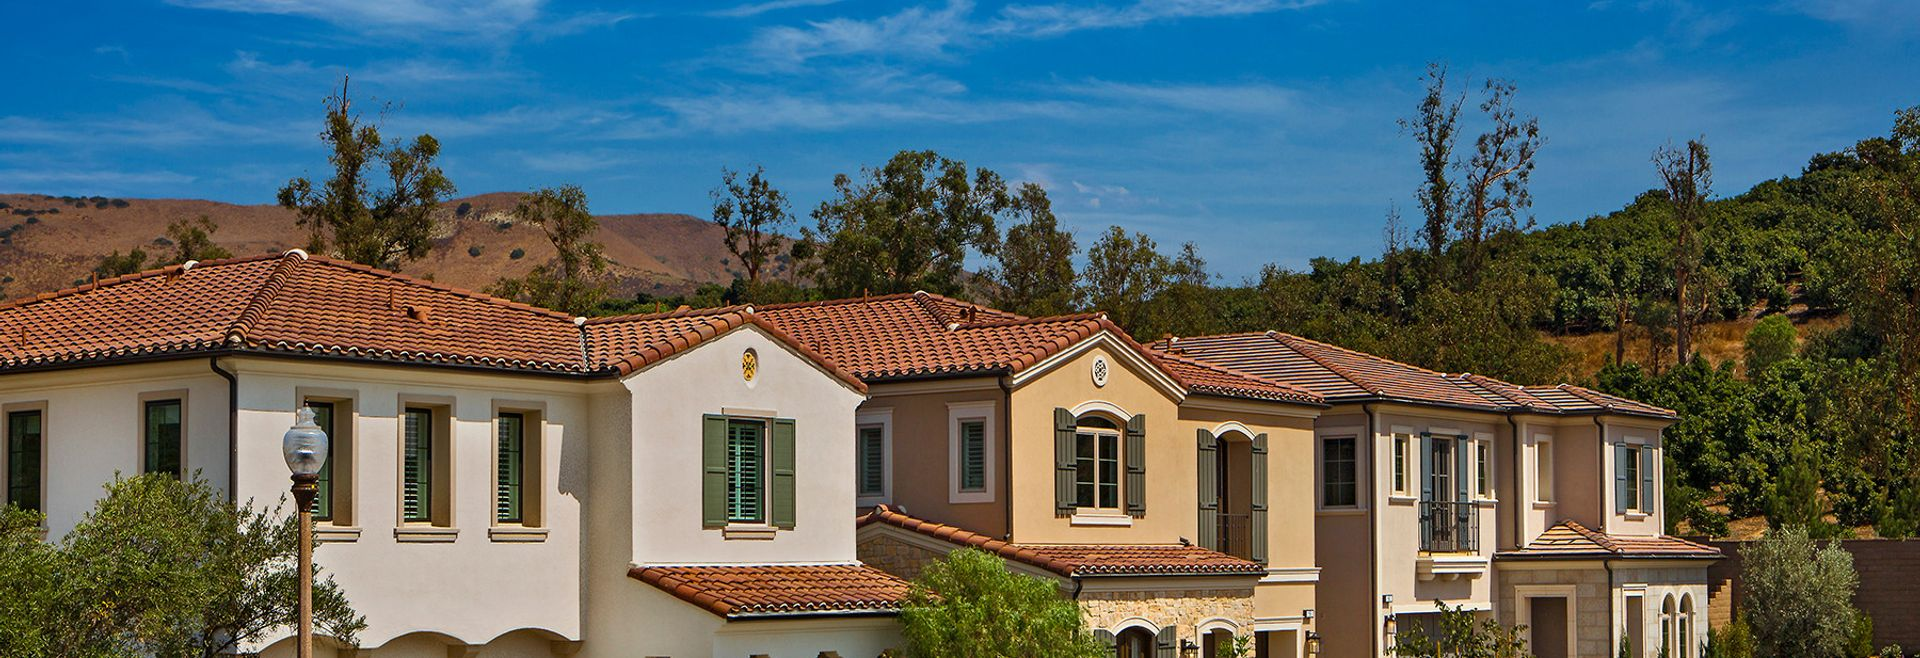 Padova at Orchard Hills by Shea Homes in Irvine, CA